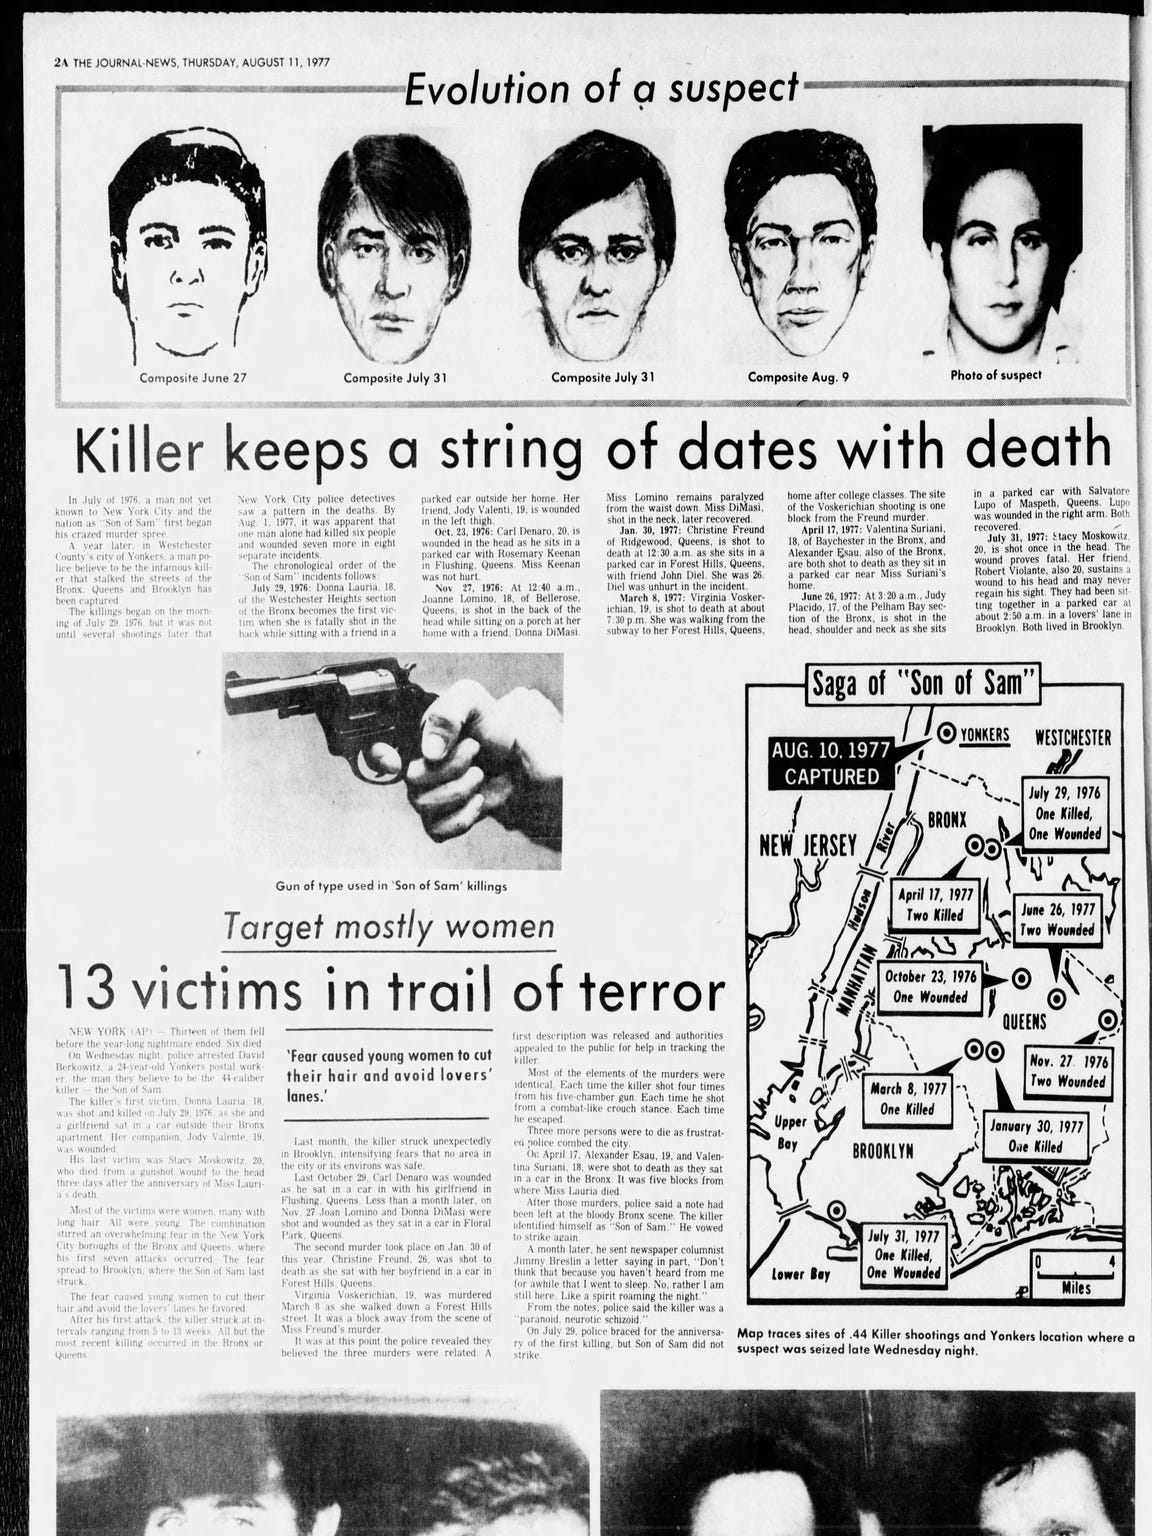 Page 2A of The Journal News from Aug. 11, 1977, when